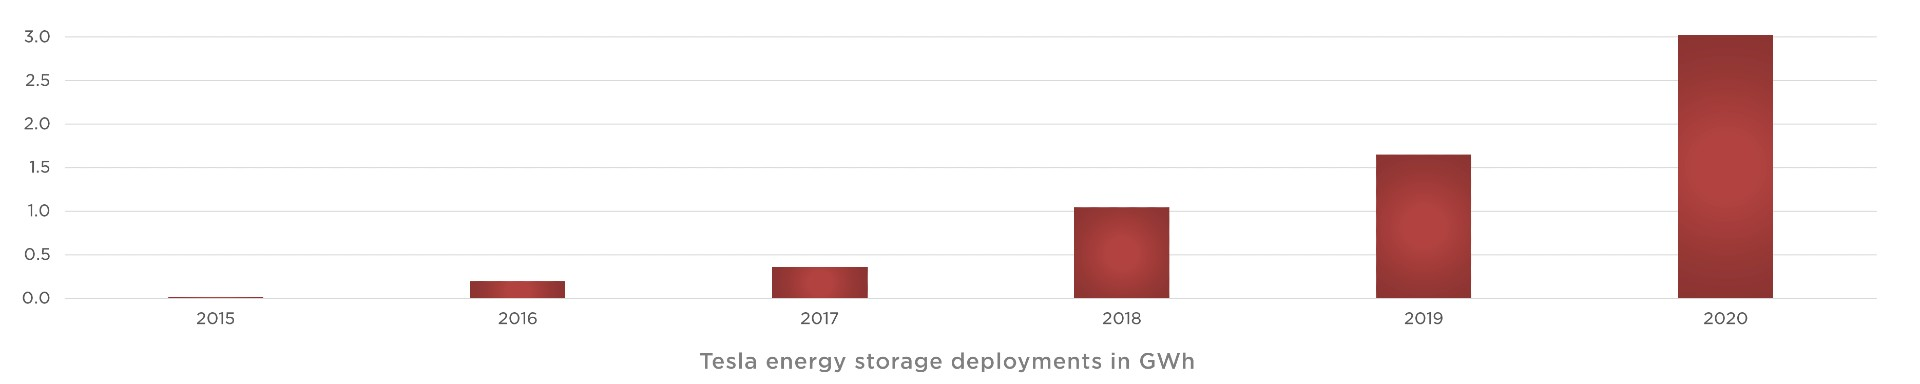 tesla-energy-deployments-2020